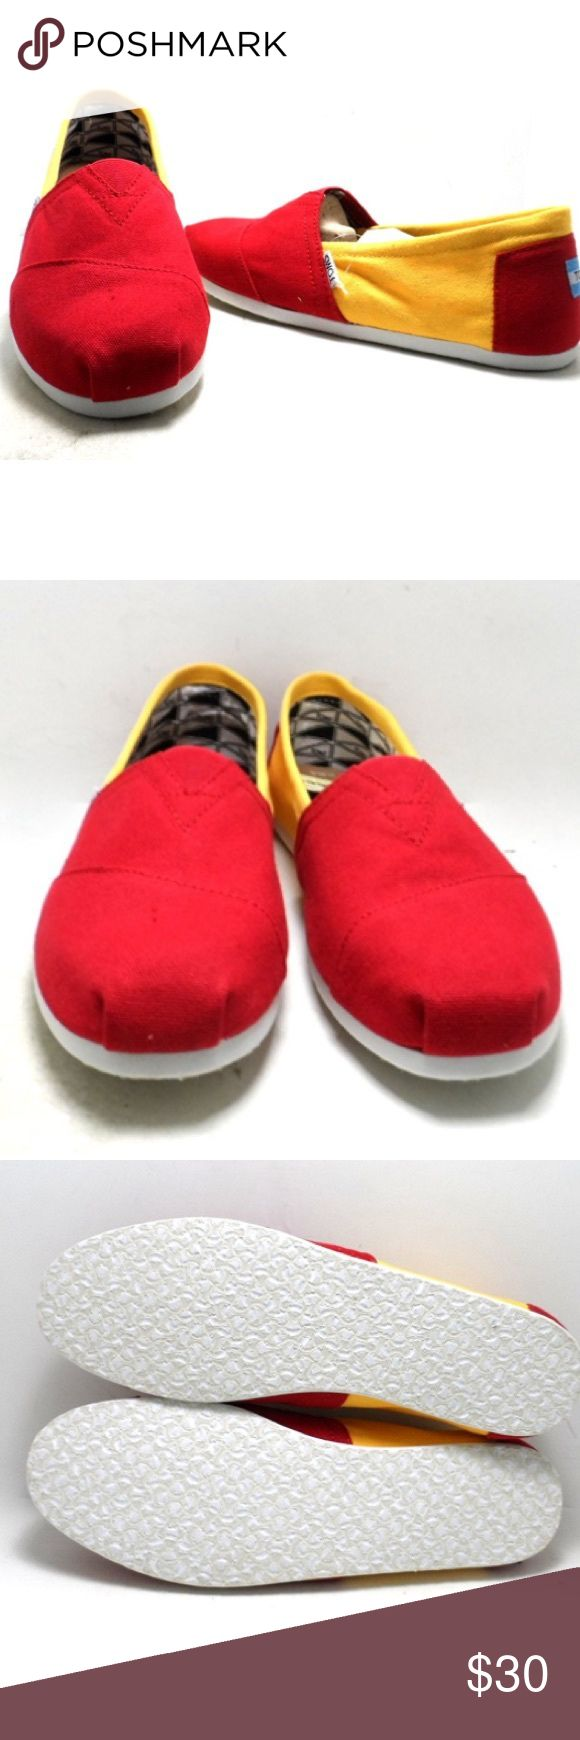 "Toms Men's Campus Classics USC Slip ons Color Toms Men's Campus Classics USC Slip ons      Color yellow/red  Size 11   New with out box.  Store display model. With out box, dust bag included. See all photos.      width 3 1/2"" sole length 11 1/2"" insole length 11 1/2""      	•	Imported